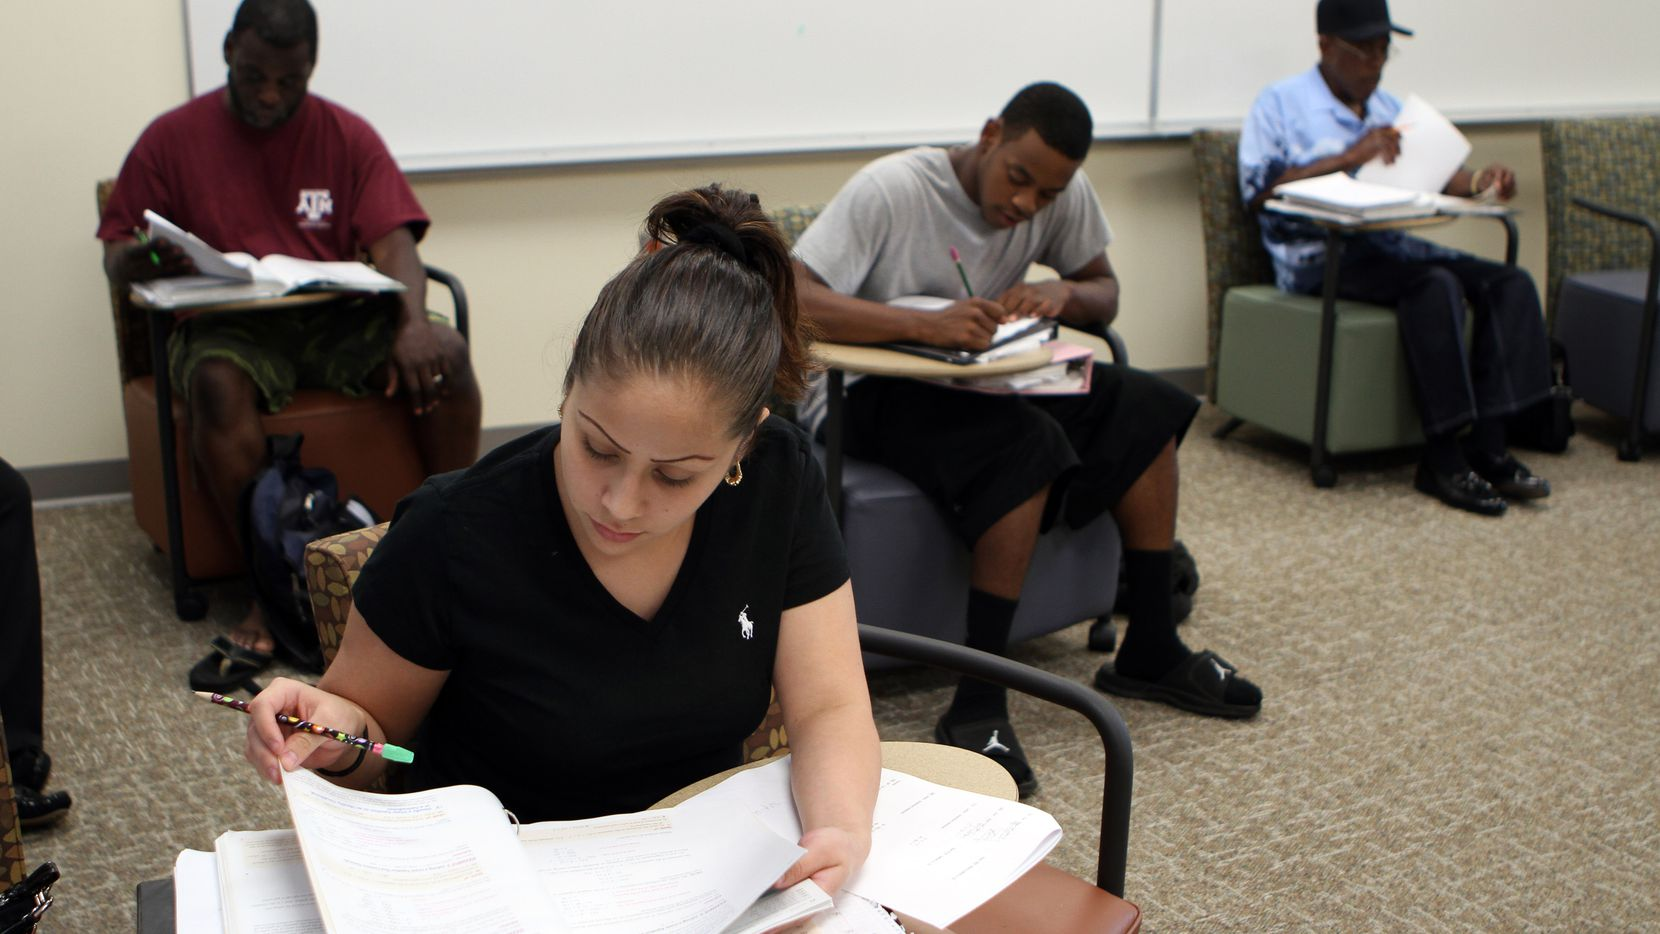 Grecia Gonzales, 22, of Dallas, works on a pre-algebra final exam at the Eastfield College Pleasant Grove campus.